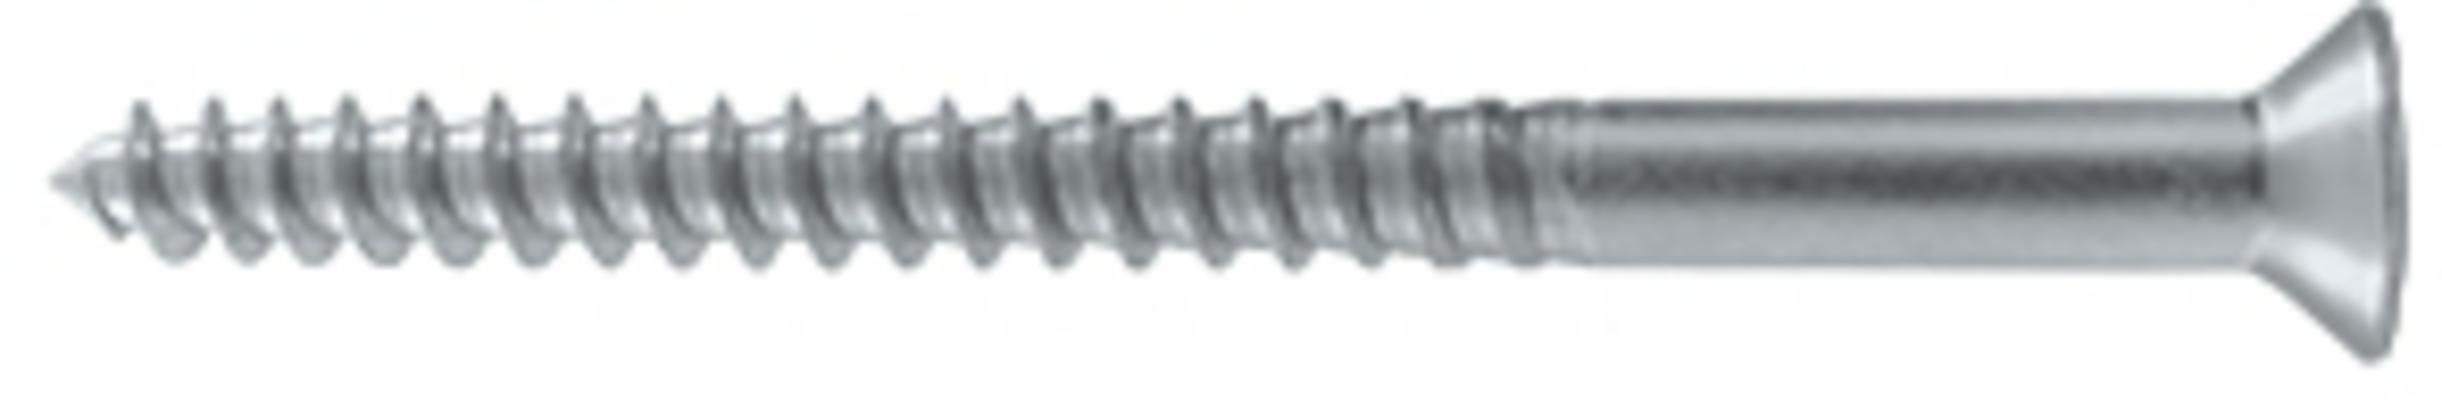 Deltana SCWB1025 2-1/2'' #10 Solid Brass Wood Screw, Brushed Chrome